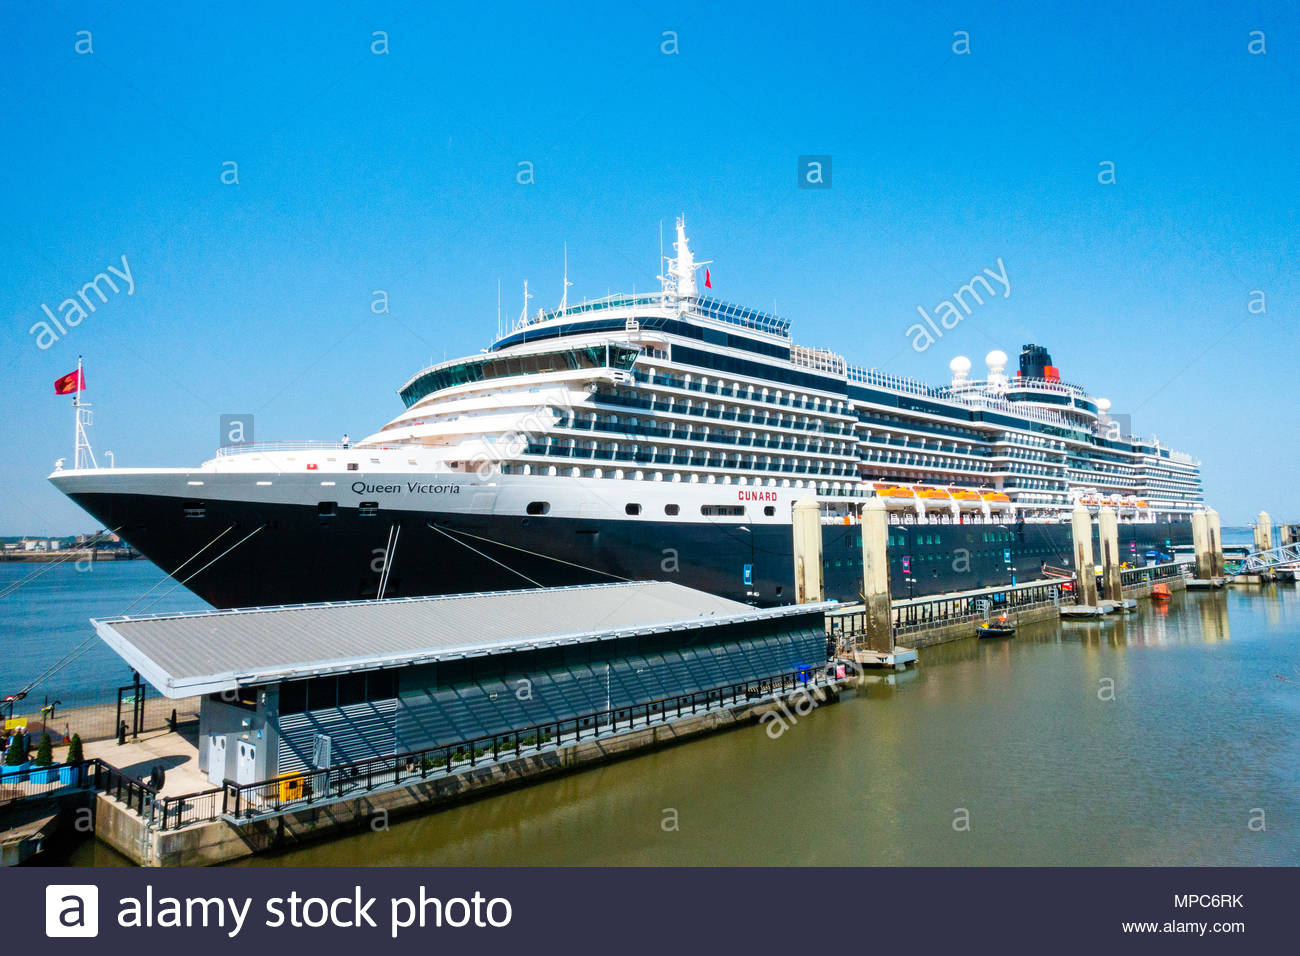 The Cunard Cruise Liner Queen Victoria berthed at the Pier Head in Liverpool, the large passenger ship berthed on a sunny day, on it's arrival in Liverpool, Merseyside, England on a very sunny day. Credit: Christopher Canty Photography/Alamy Live News - Stock Image